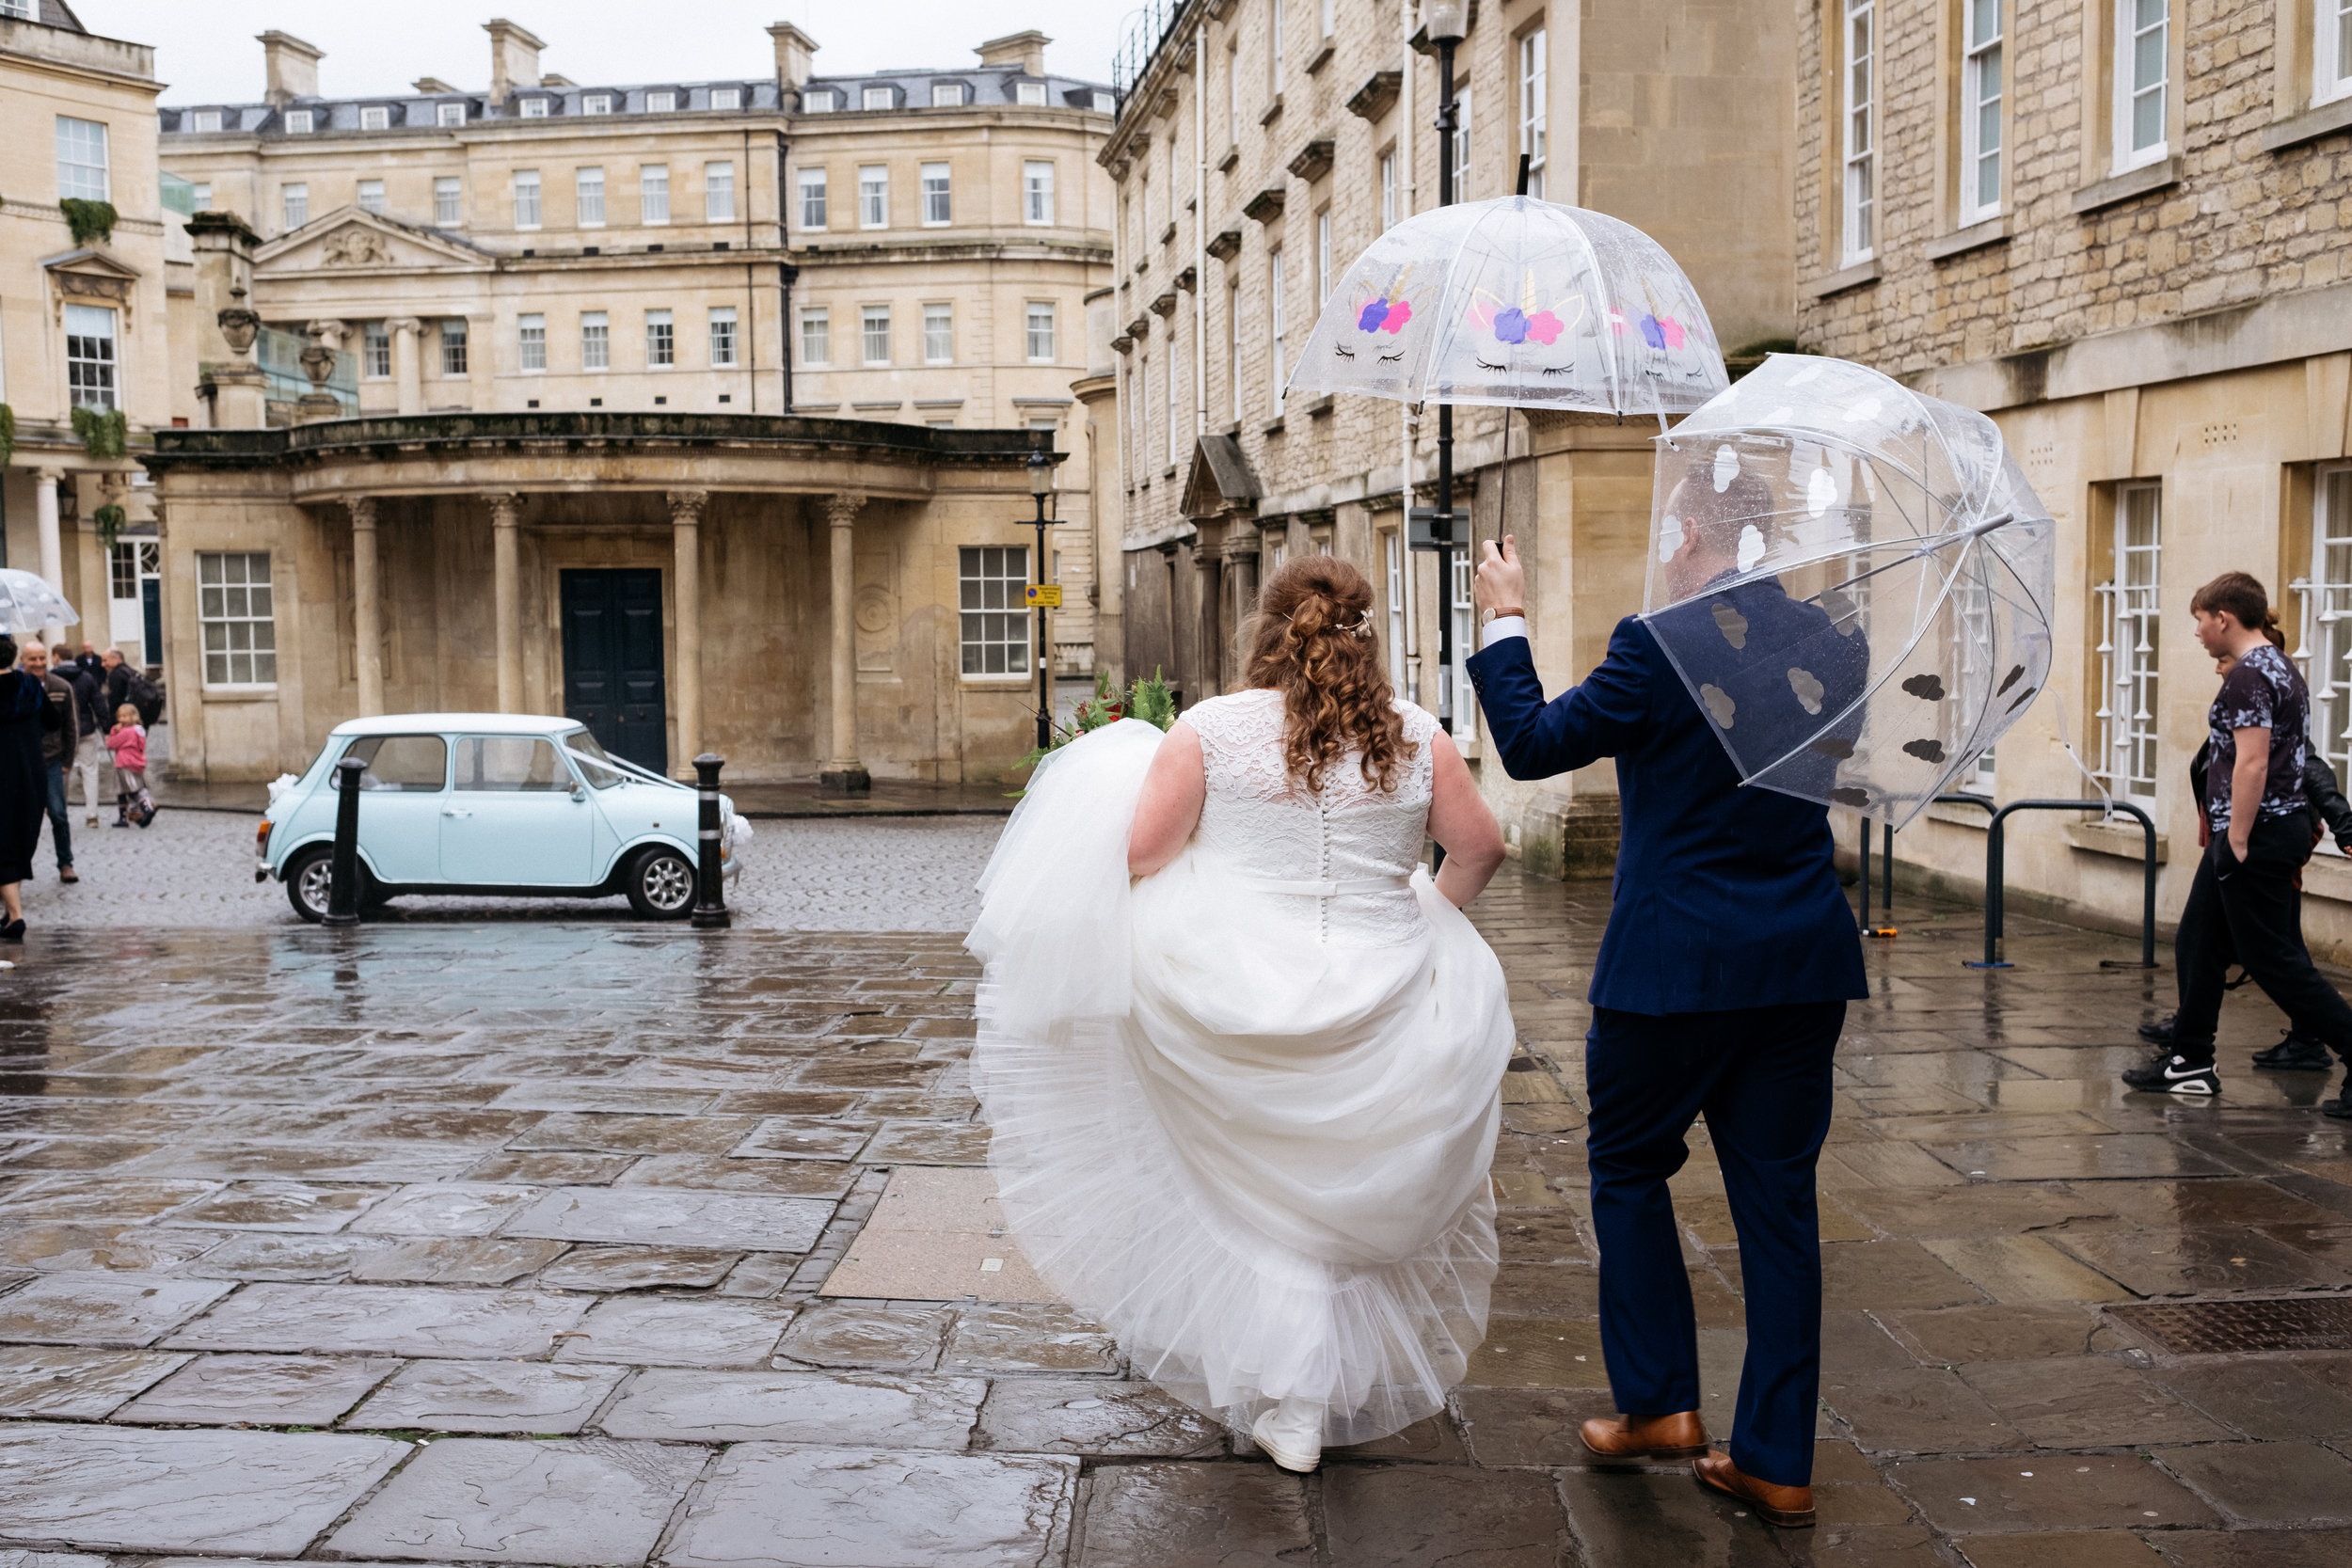 Wedding at the Little Theatre in Bath